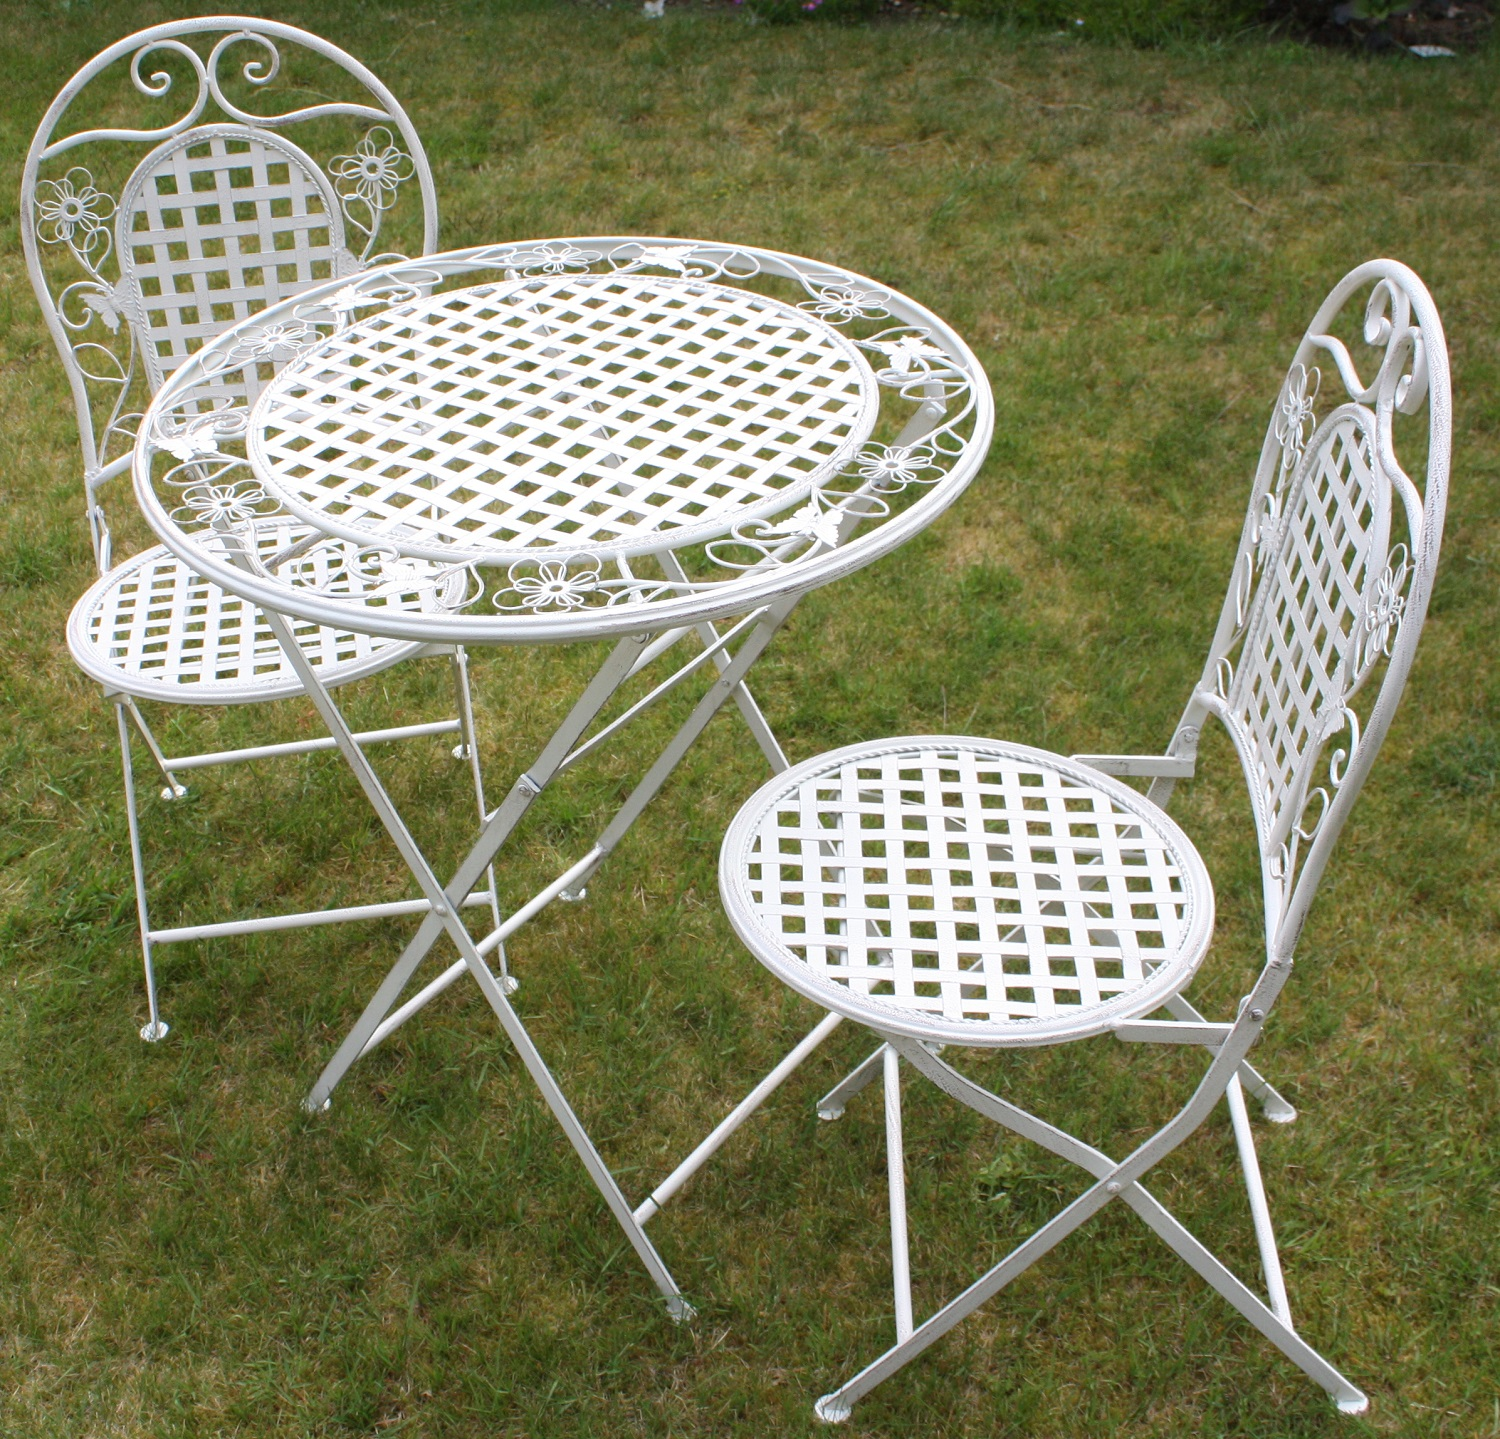 outdoor folding metal round table and chairs garden patio furniture